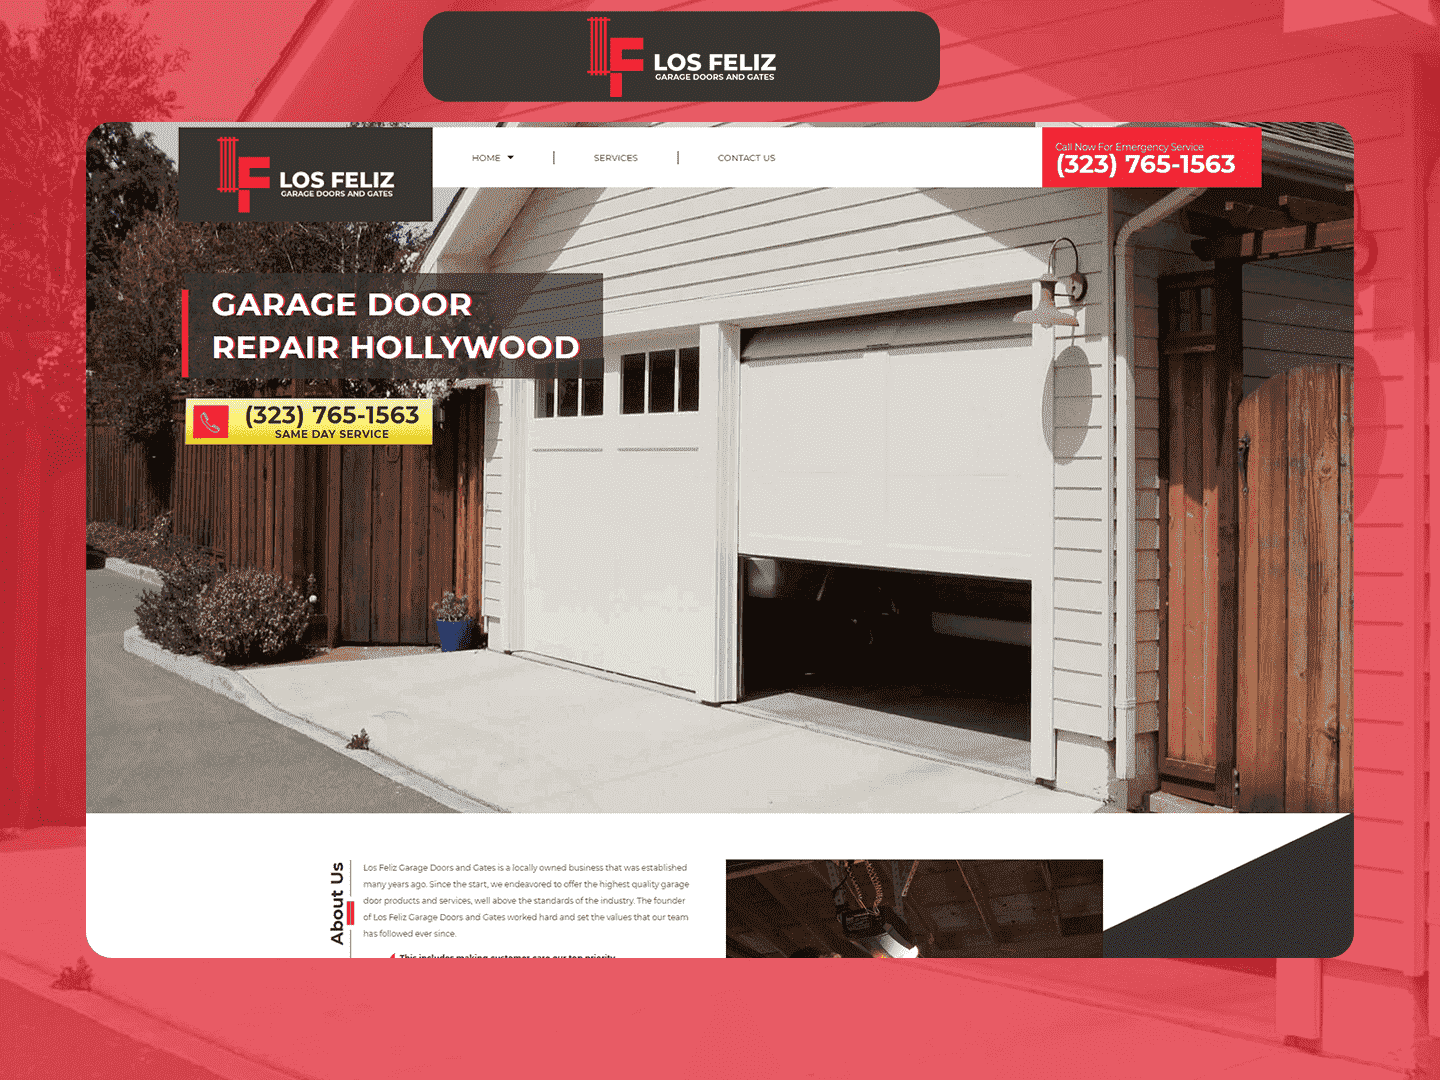 Los Feliz Garage Doors and Gates